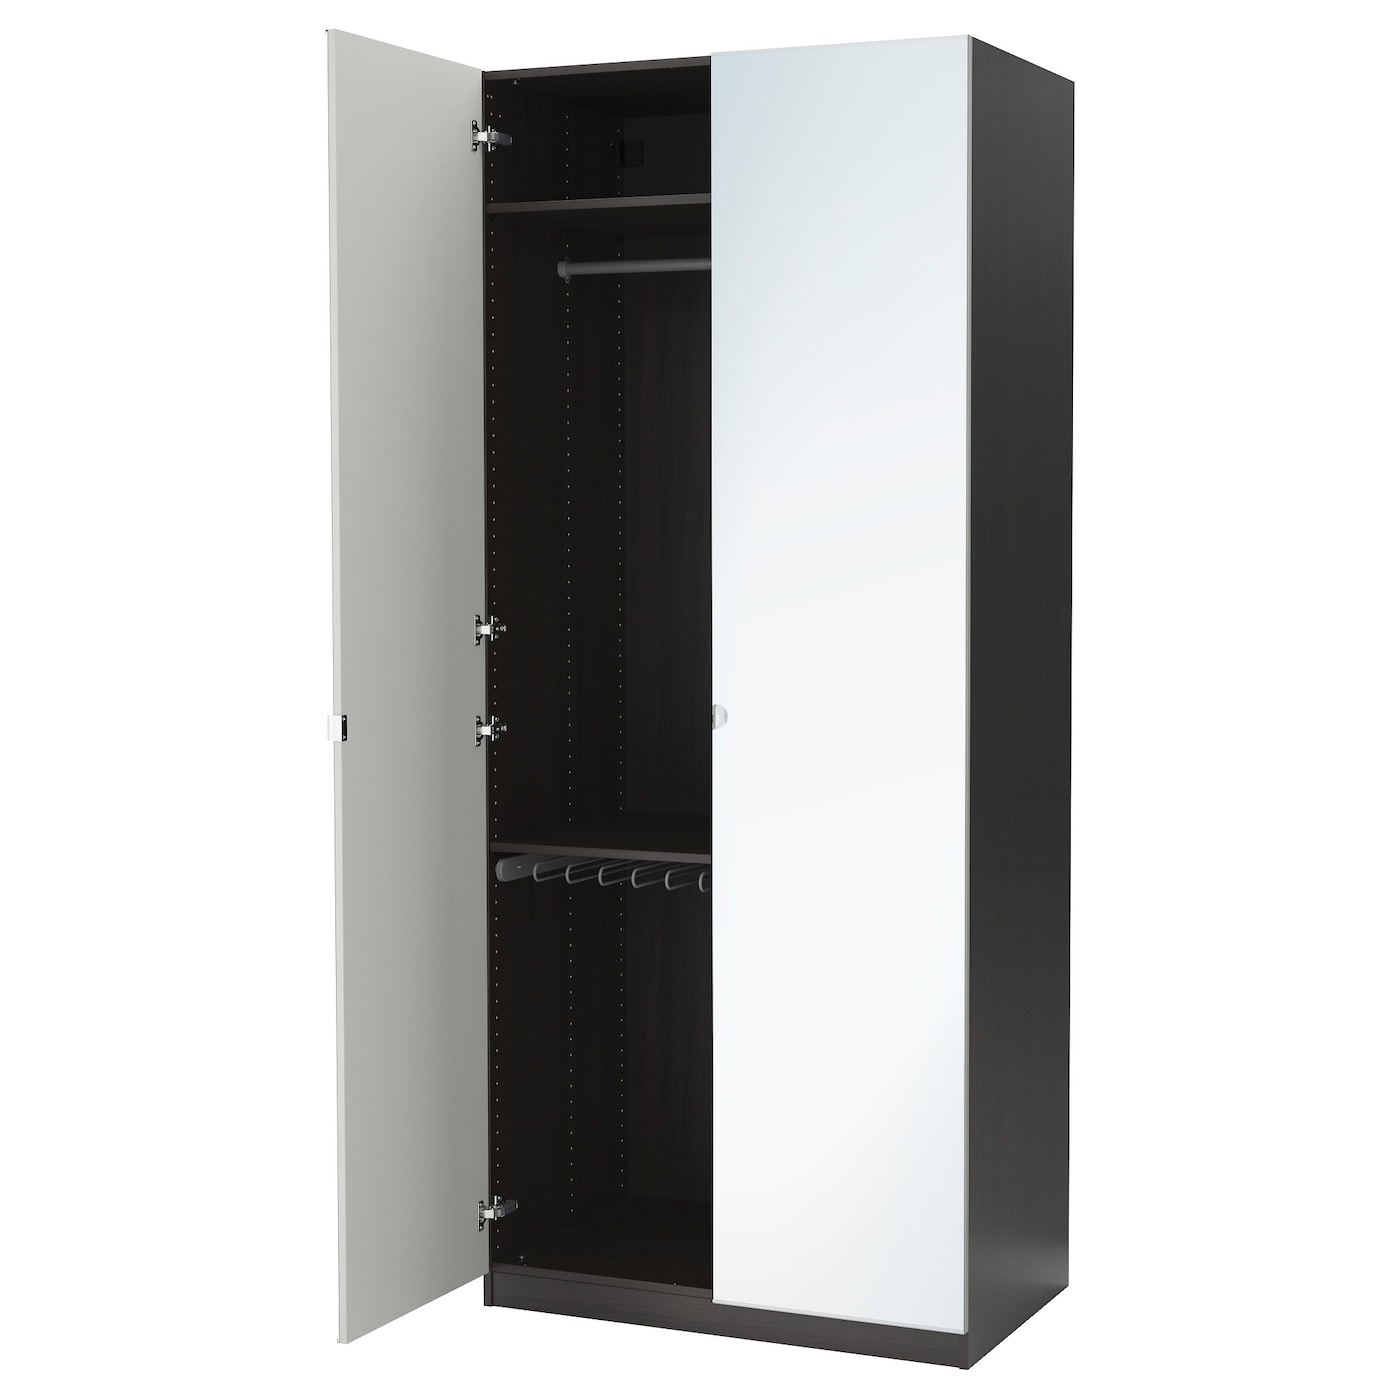 Pax wardrobe black brown vikedal mirror glass 100x60x236 - Ikea armoire porte coulissante ...